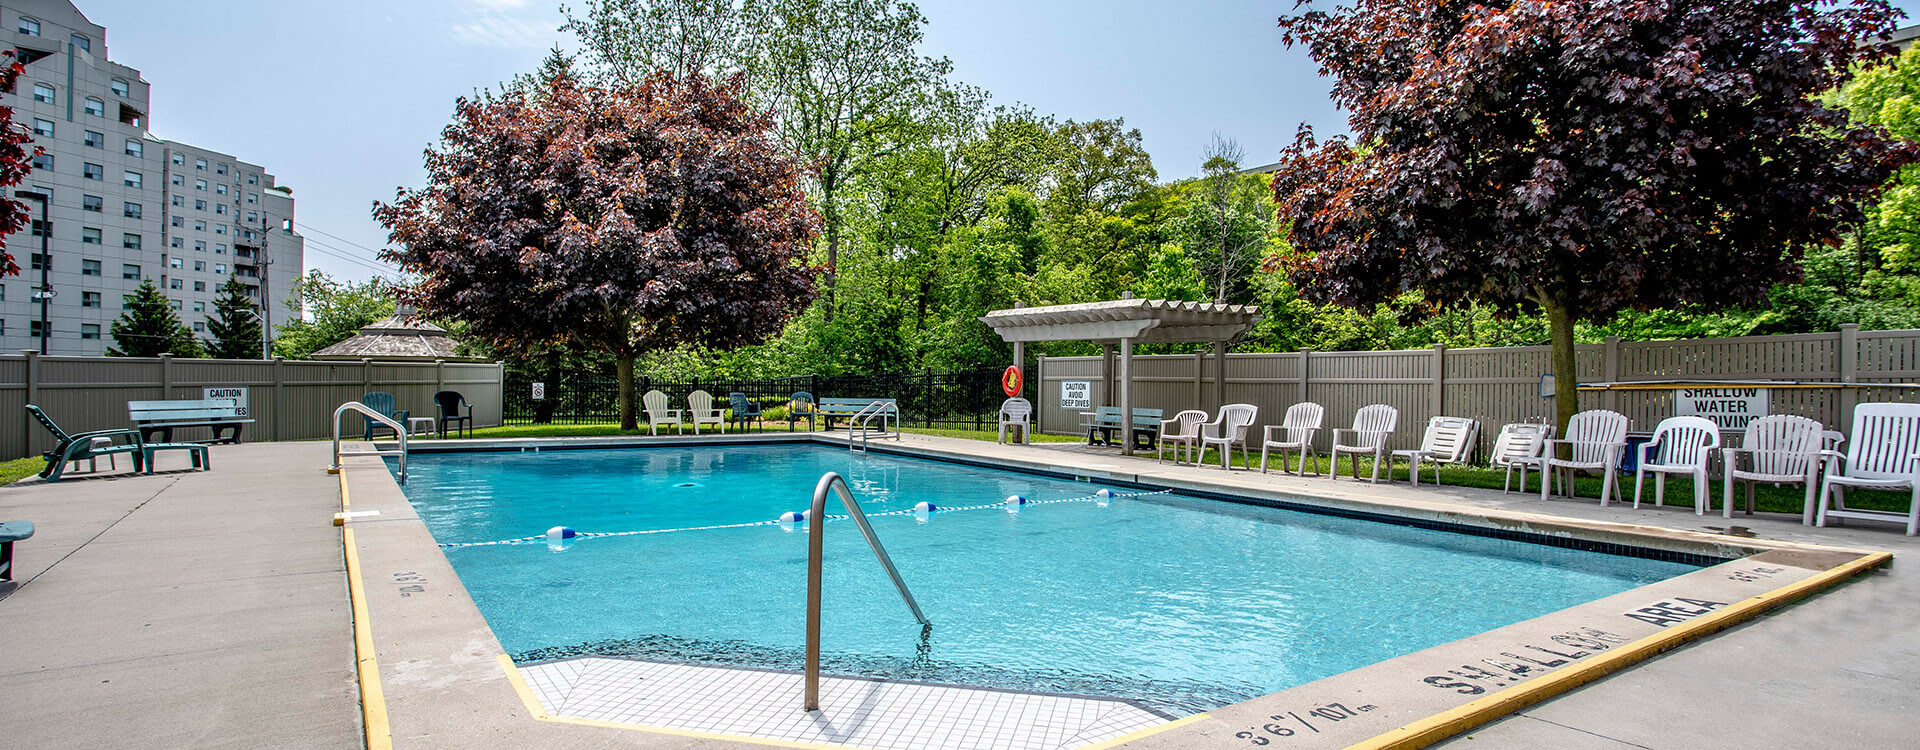 Outdoor swimming pool at Proudfoot Lane Apartments in London. Rent with Minto Apartments.